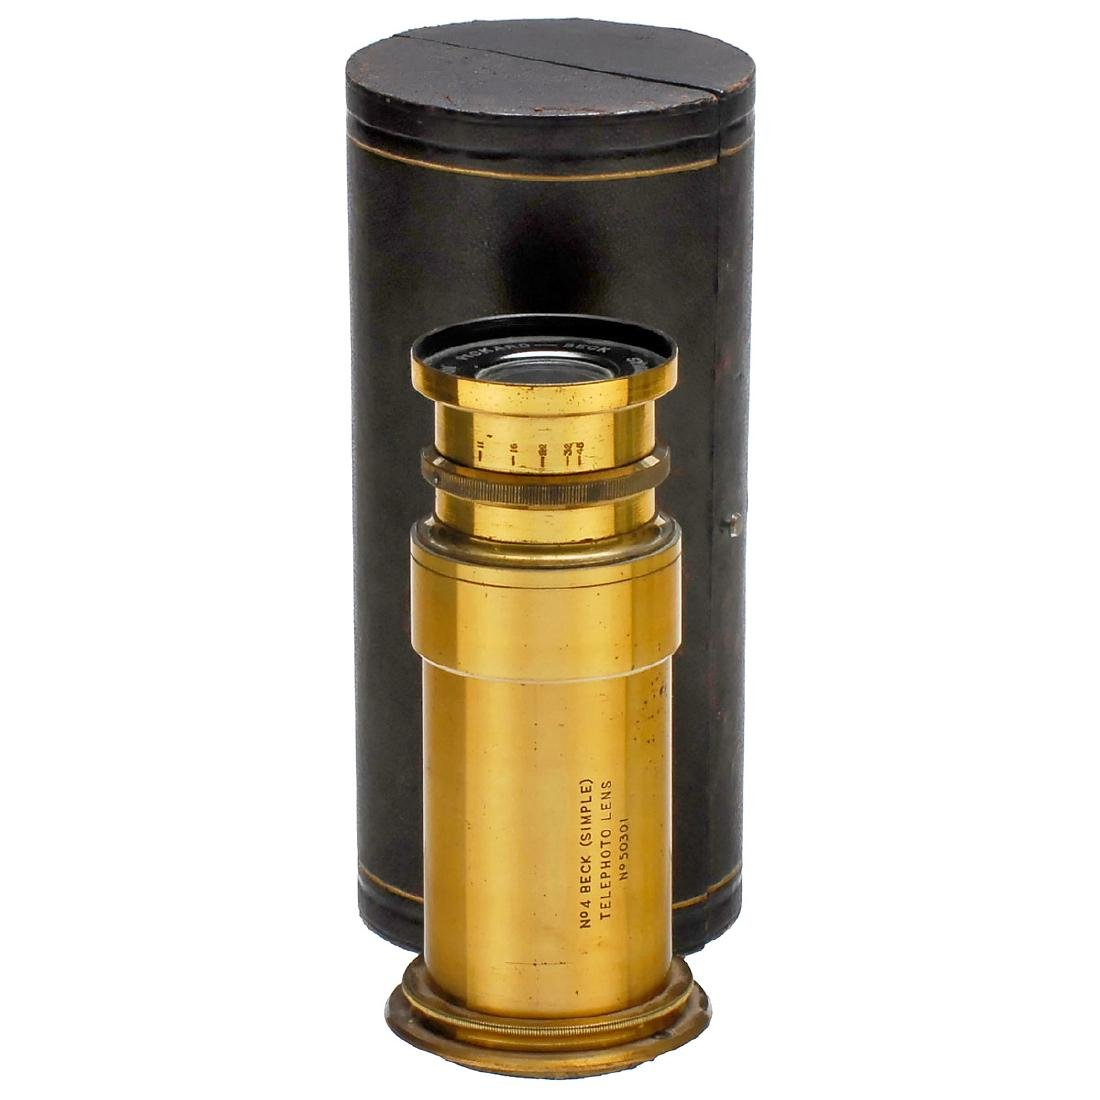 """No. 4 Beck (Simple) Telephoto Lens"", c. 1905"